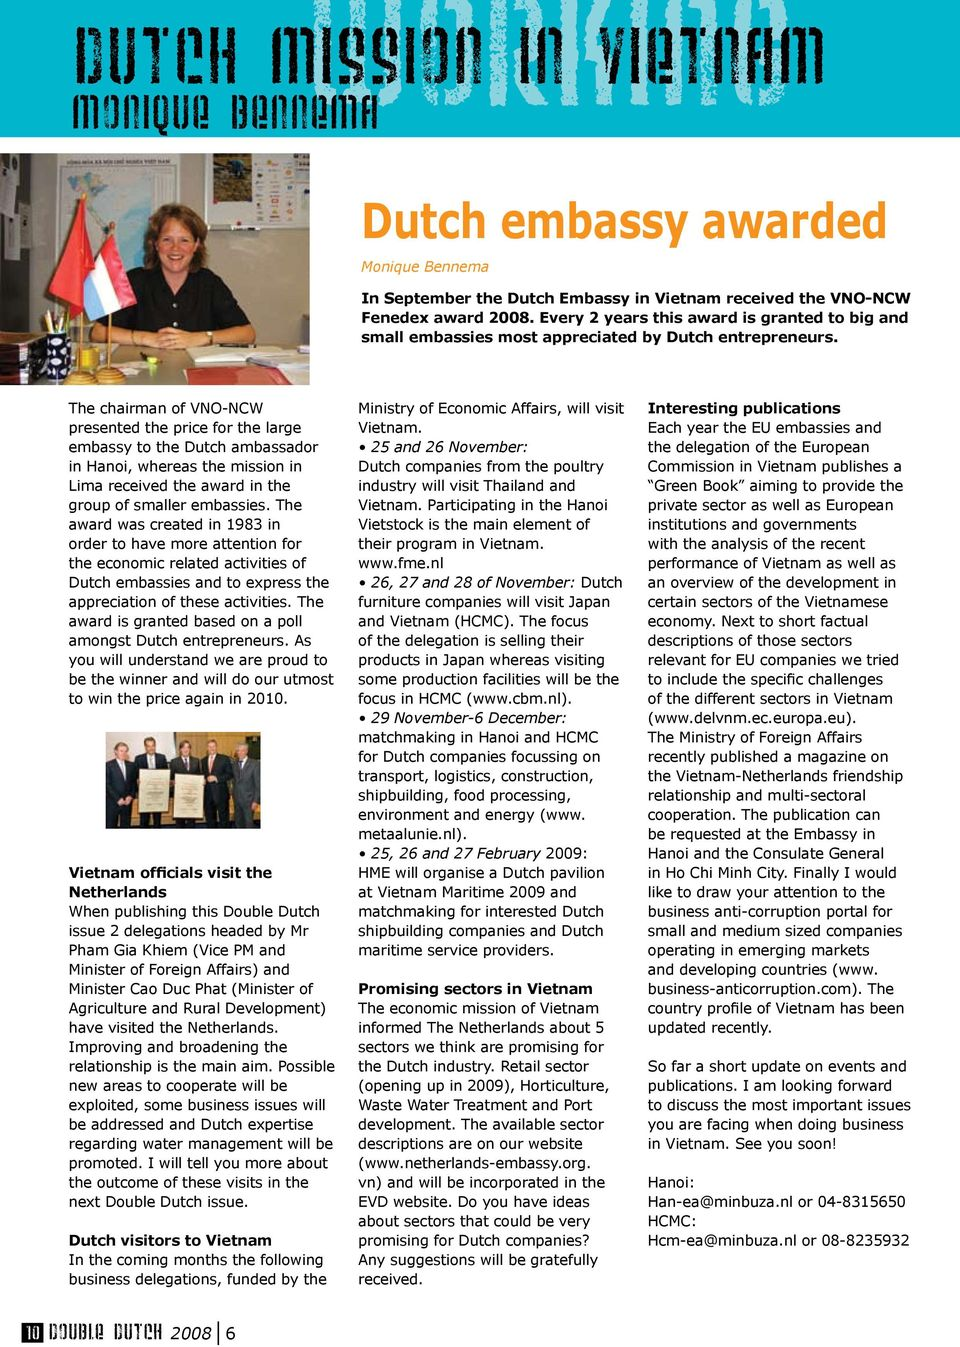 The chairman of VNO-NCW presented the price for the large embassy to the Dutch ambassador in Hanoi, whereas the mission in Lima received the award in the group of smaller embassies.